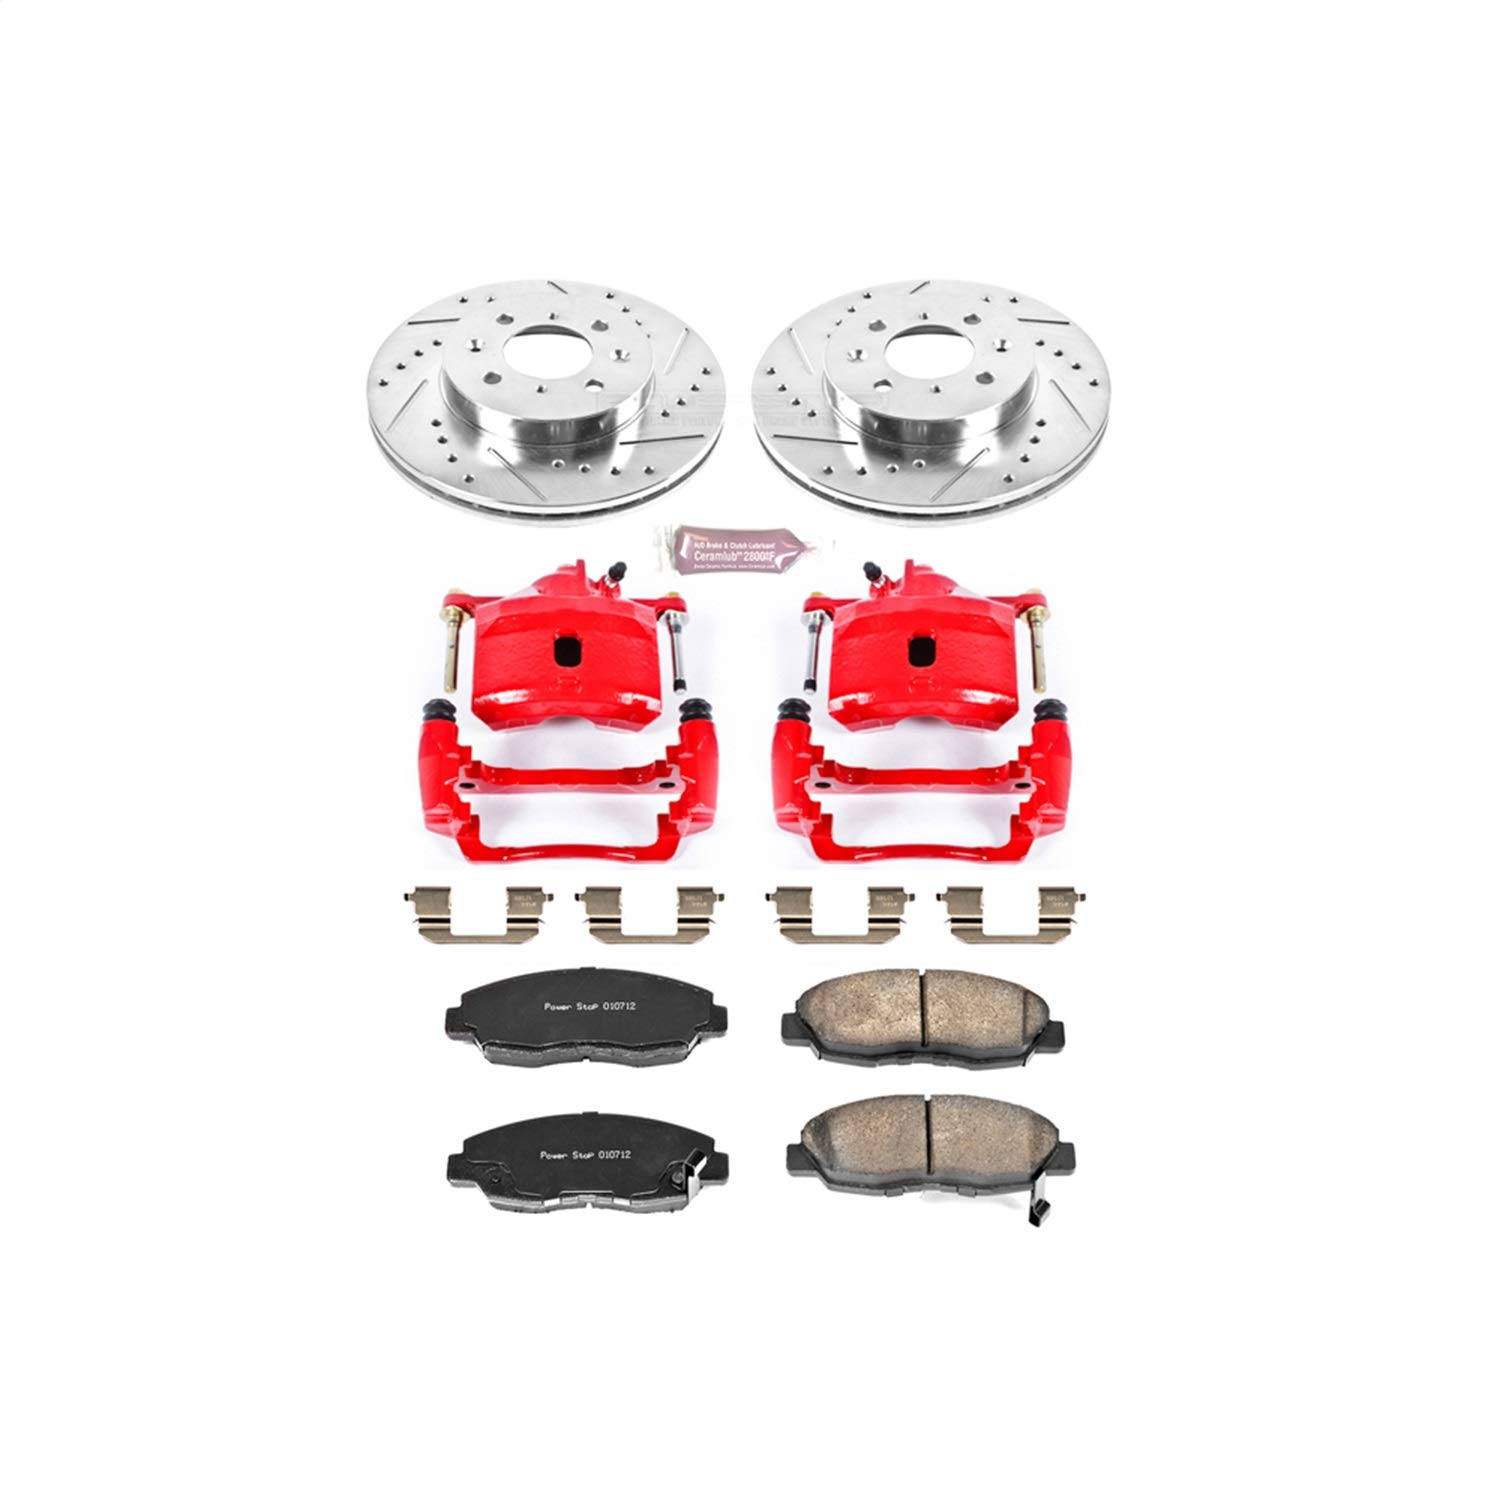 Power Stop KC690 1-Click Performance Brake Kit with Calipers, Front Only by POWERSTOP